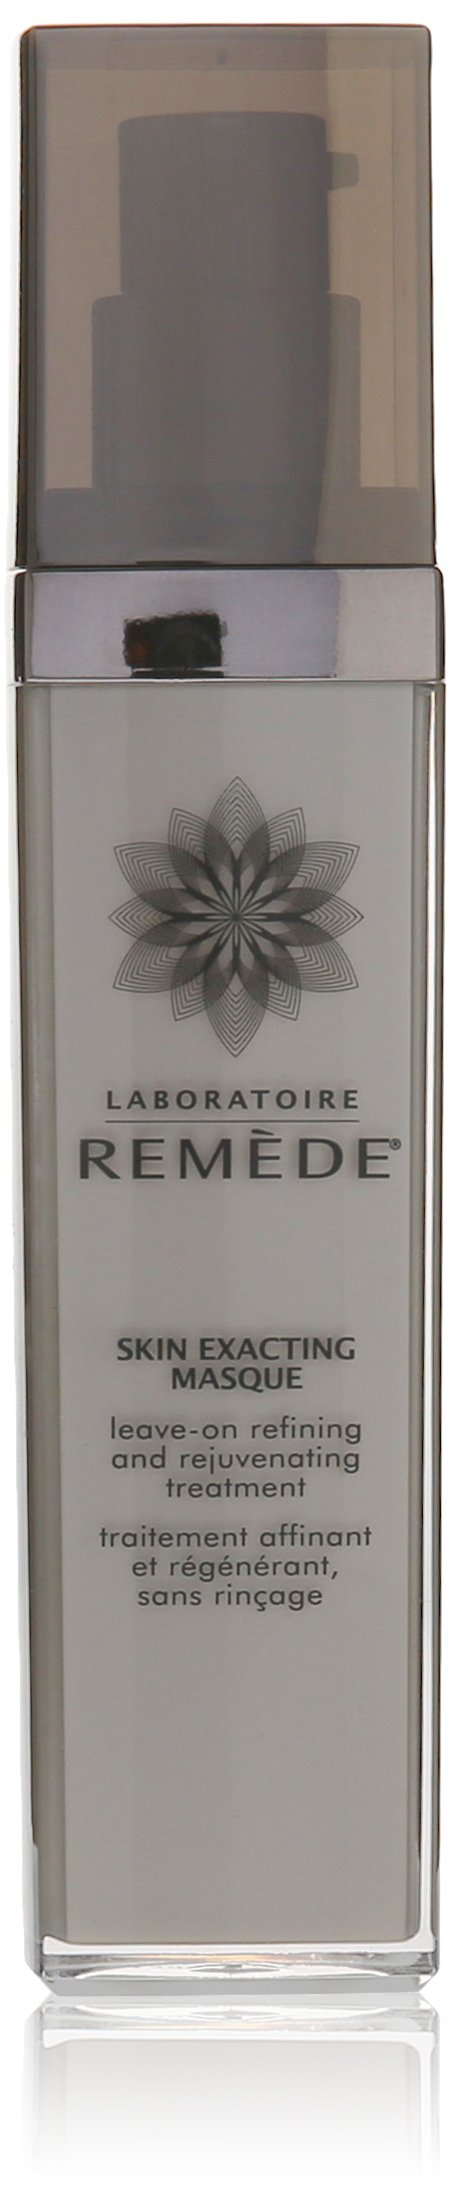 Remede Skin Exacting Masque, 1.7 Fluid Ounce